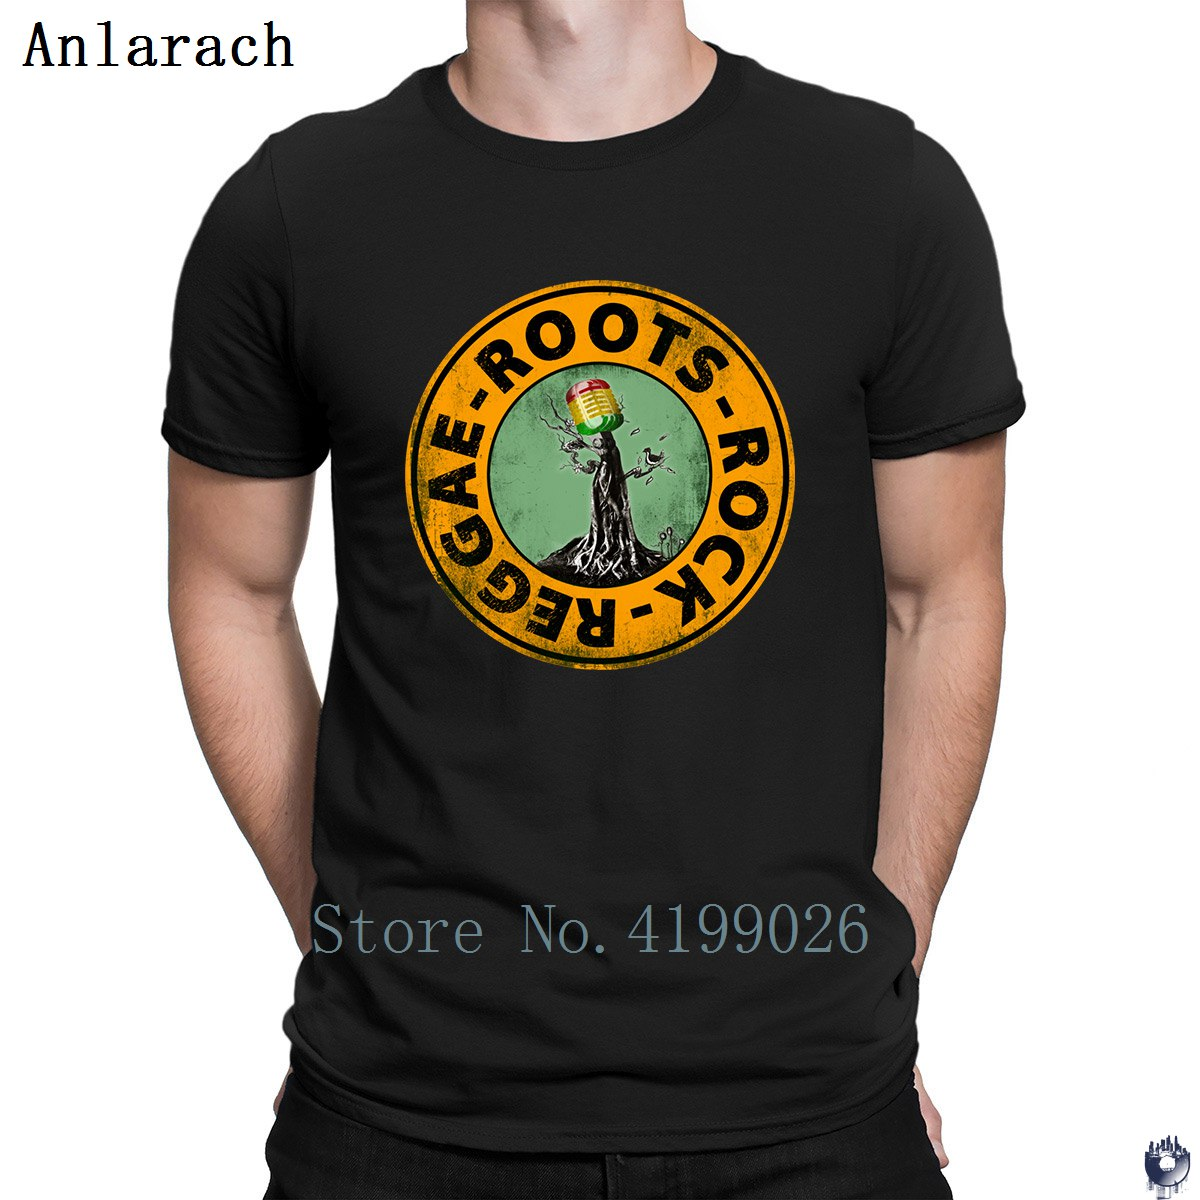 Image 2 - Roots Rock Reggae. t shirts Euro Size Pop Top Tee Basic Solid men's tshirt Designing High quality summer Anlarach New Style-in T-Shirts from Men's Clothing